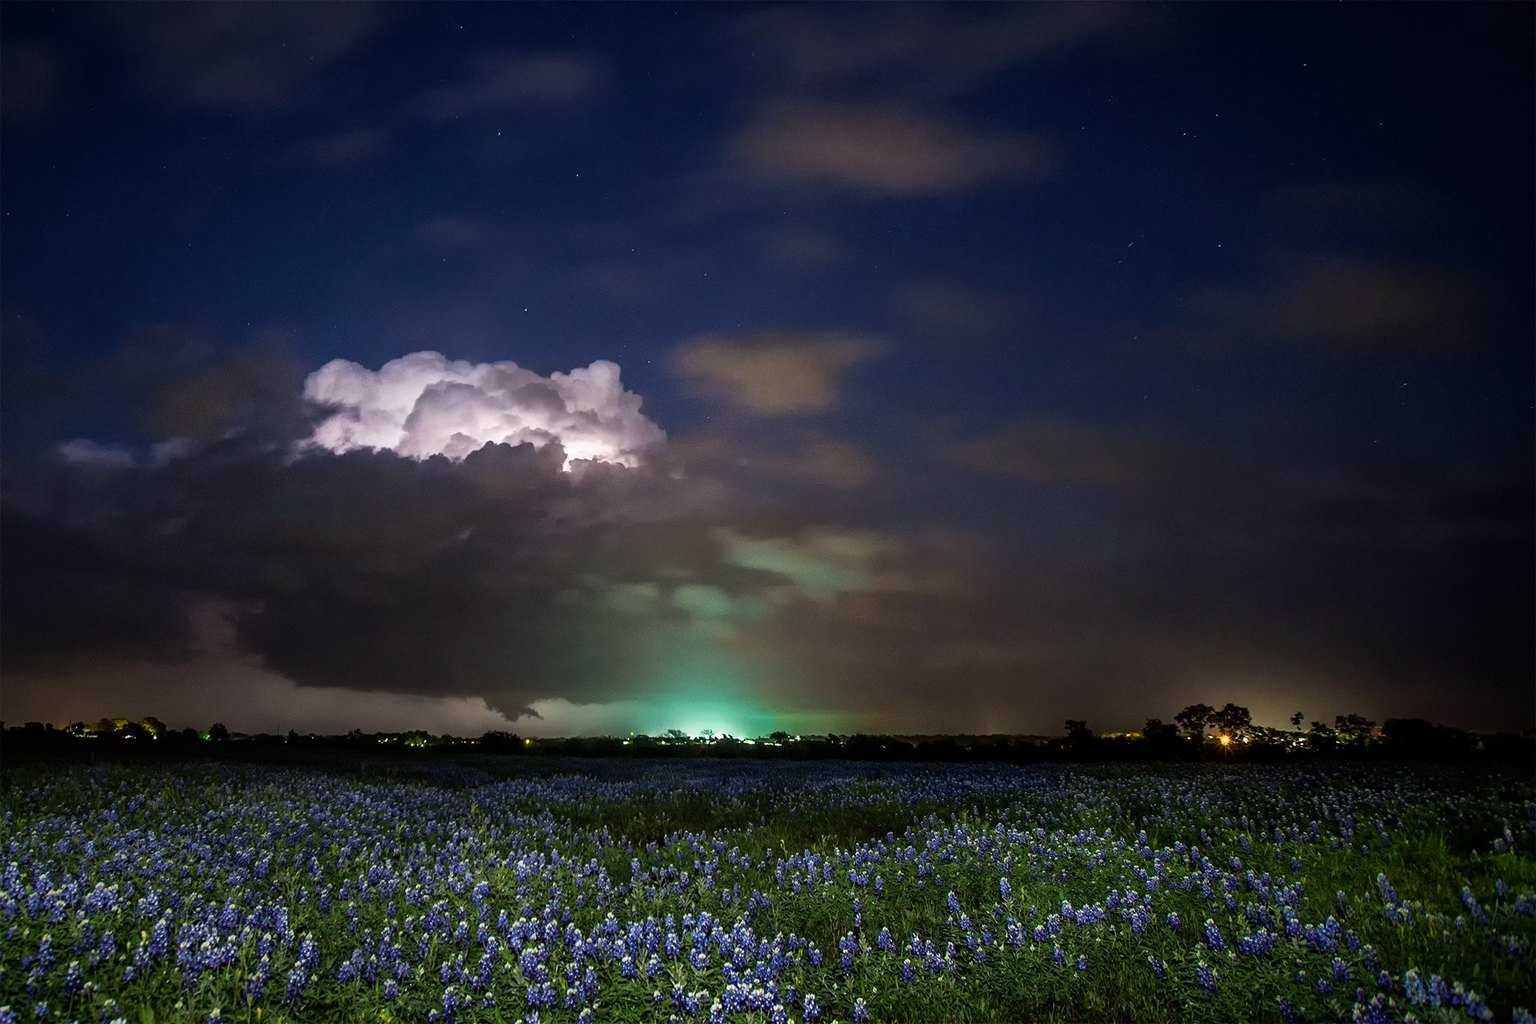 Single frame from a timelapse of a severe warned supercell over the bluebonnet fields in Brenham, Texas a few weeks back. Was blessed with a few storms over the course of several weeks of wildflower photography workshops and tours. Now that the season is winding down, I am really looking forward to late spring's adventures!